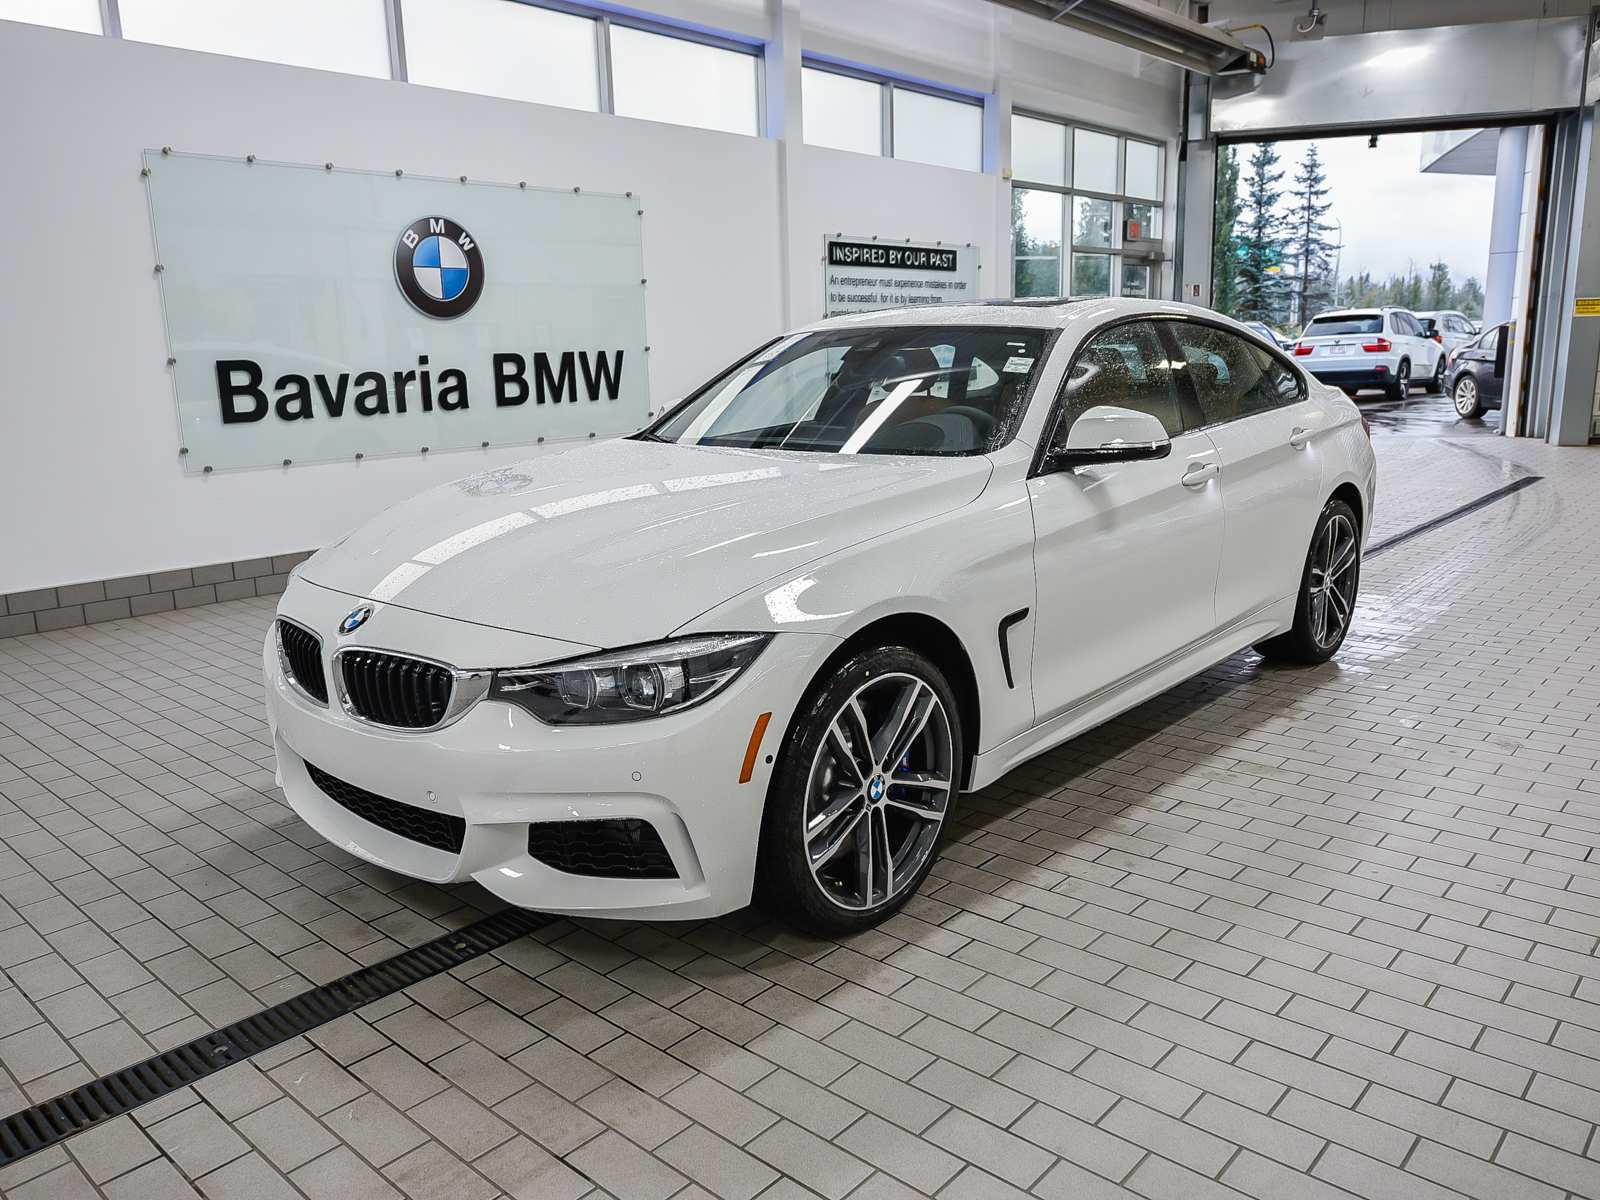 55 New 2019 Bmw 440I Review Specs and Review for 2019 Bmw 440I Review